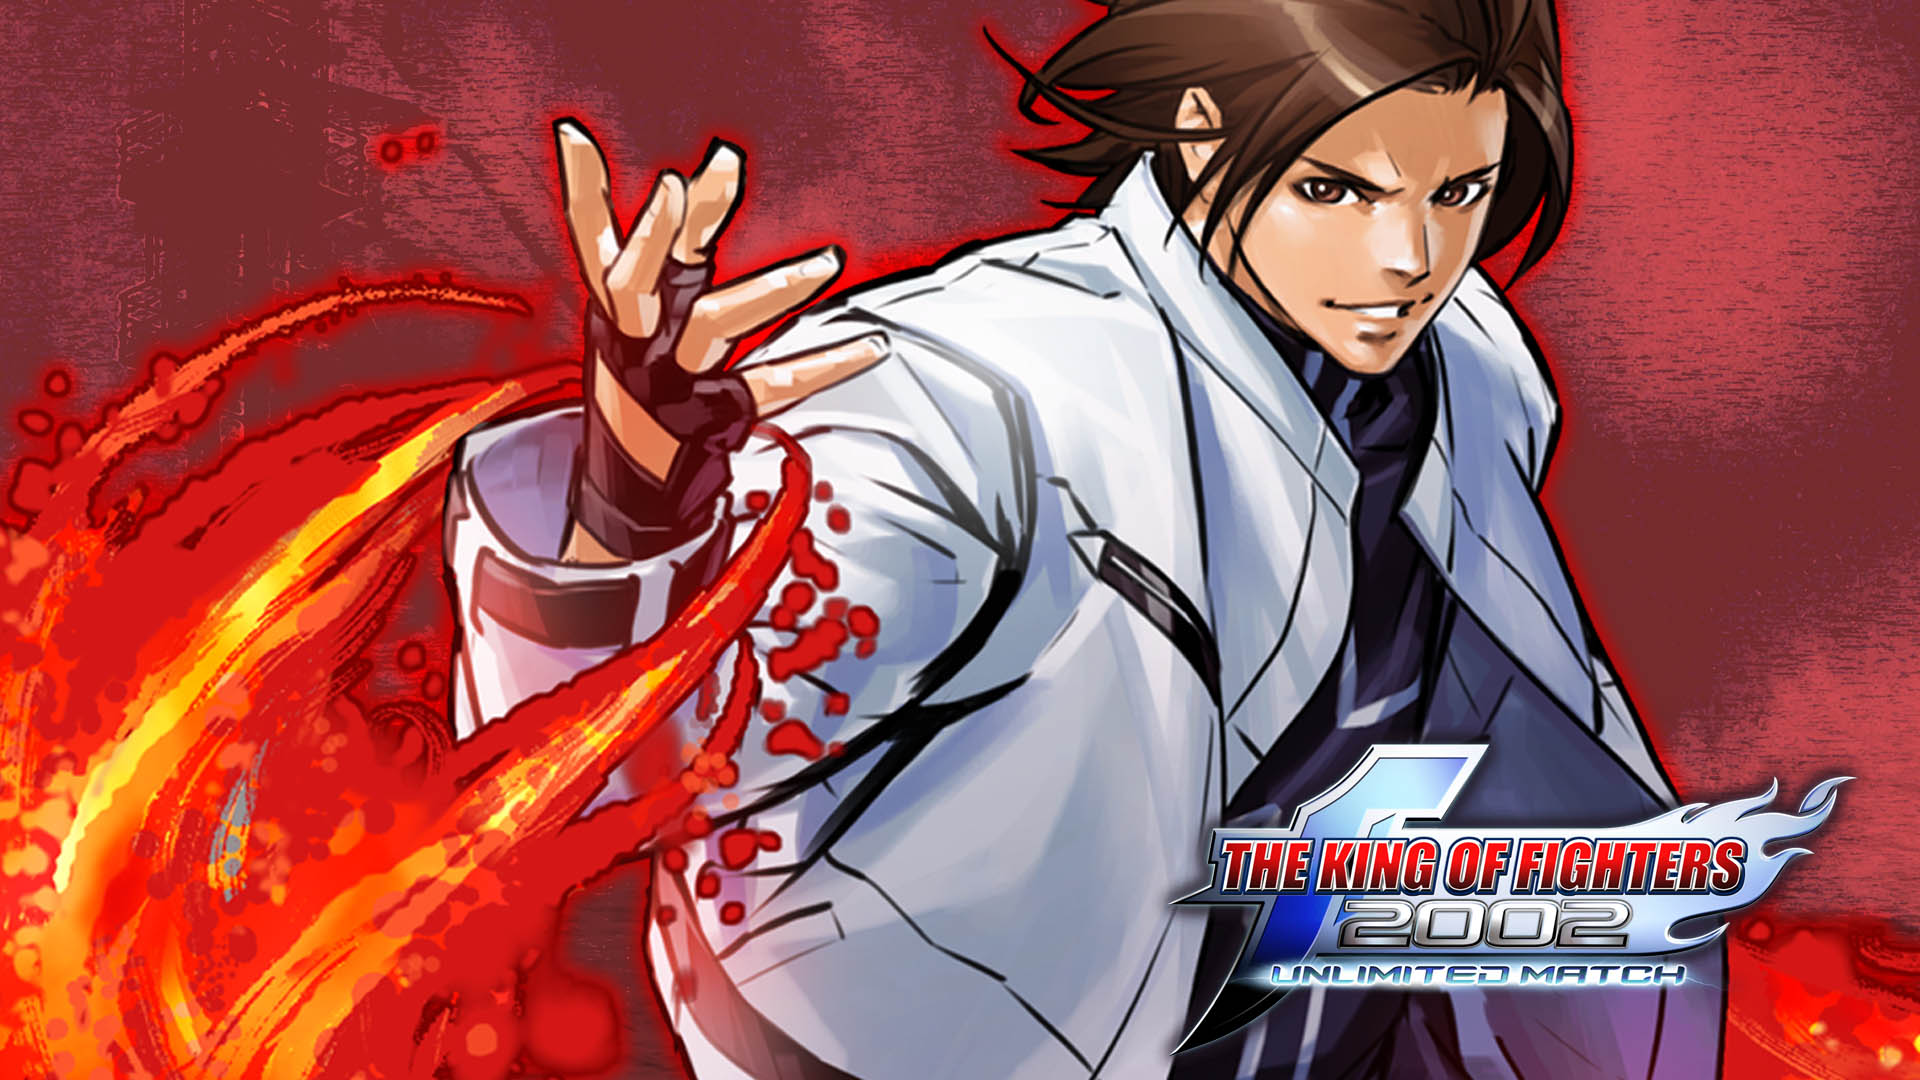 Showcase The King Of Fighters 2002 Unlimited Match